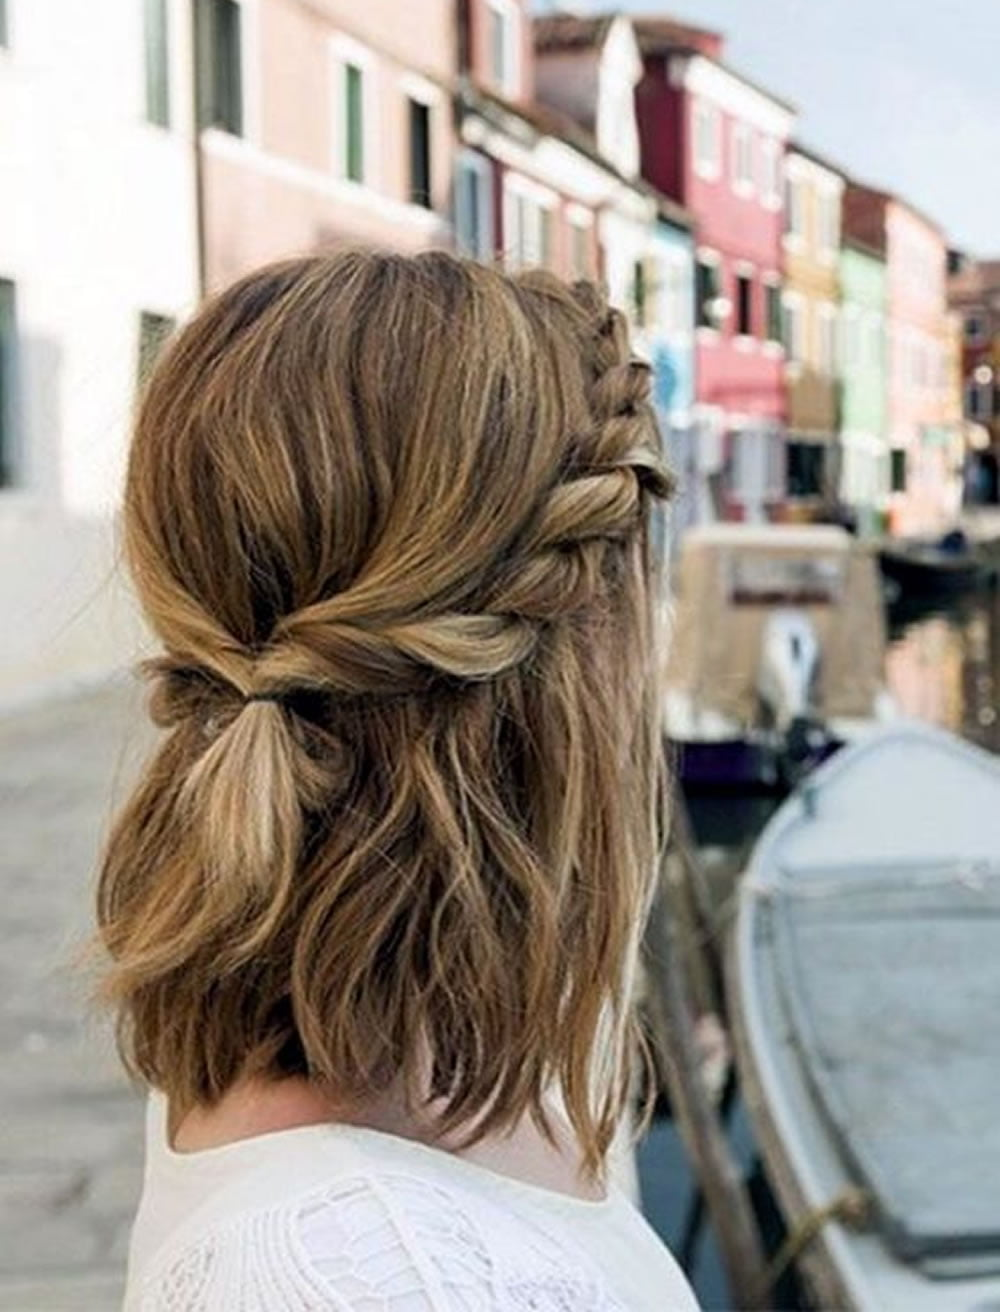 20 Cool Back To School Hairstyles And Hair Colors 2019 Page 2